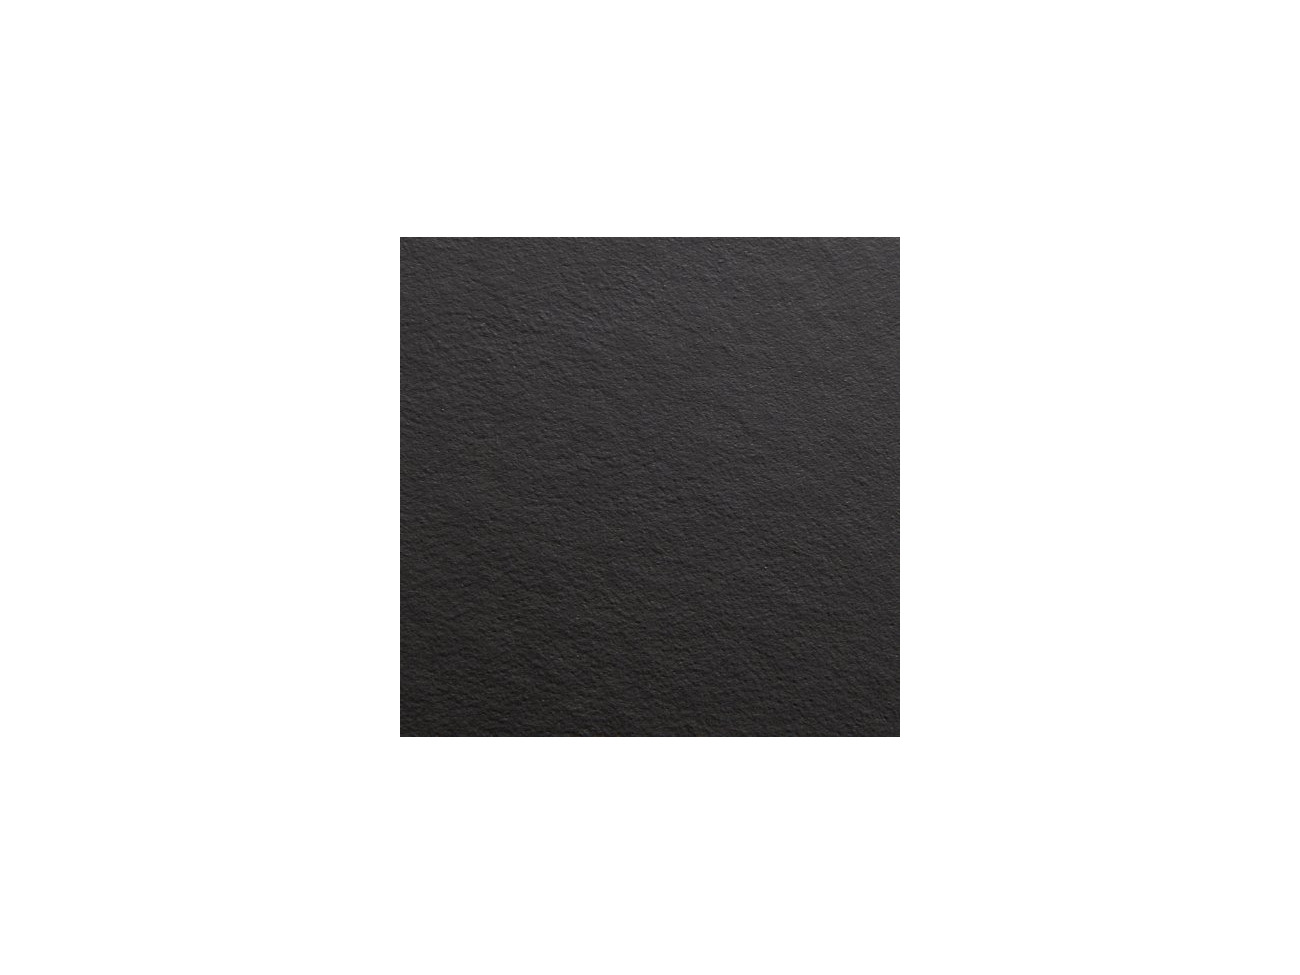 Buy Amazon Kindle Leather Cover (5th Generation - 2012